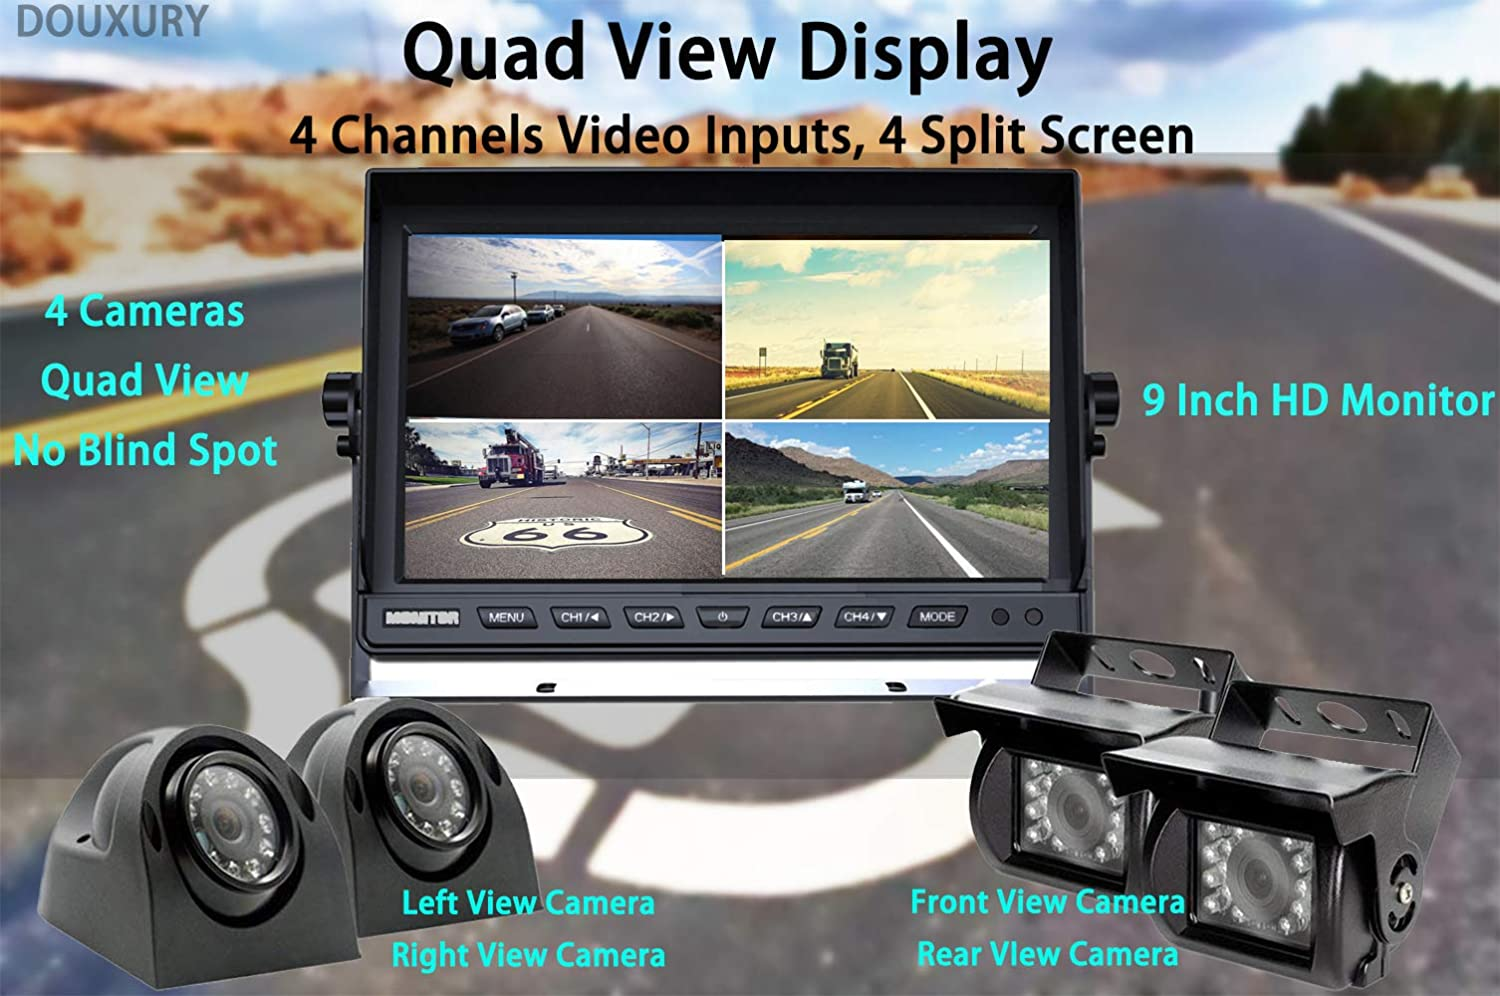 Douxury Backup Camera System Waterproof Night Vision Cameras x 4 for Truck Trailer Heavy Box Truck RV Camper Bus 4 Splite Screen 9 Quad View Display HD Monitor with DVR Recording Function